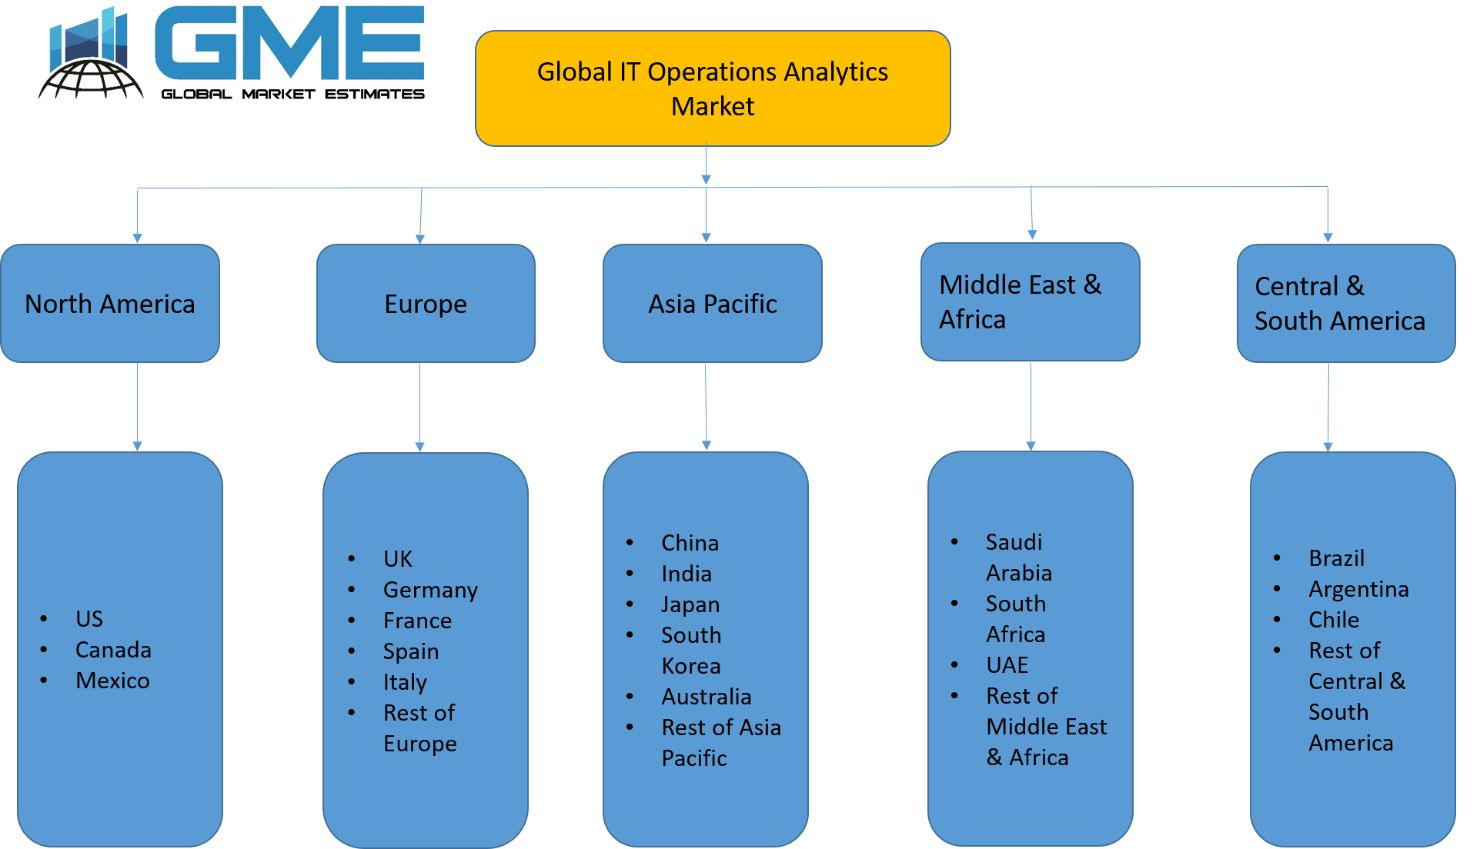 Global IT Operations Analytics Market - Regional Analysis